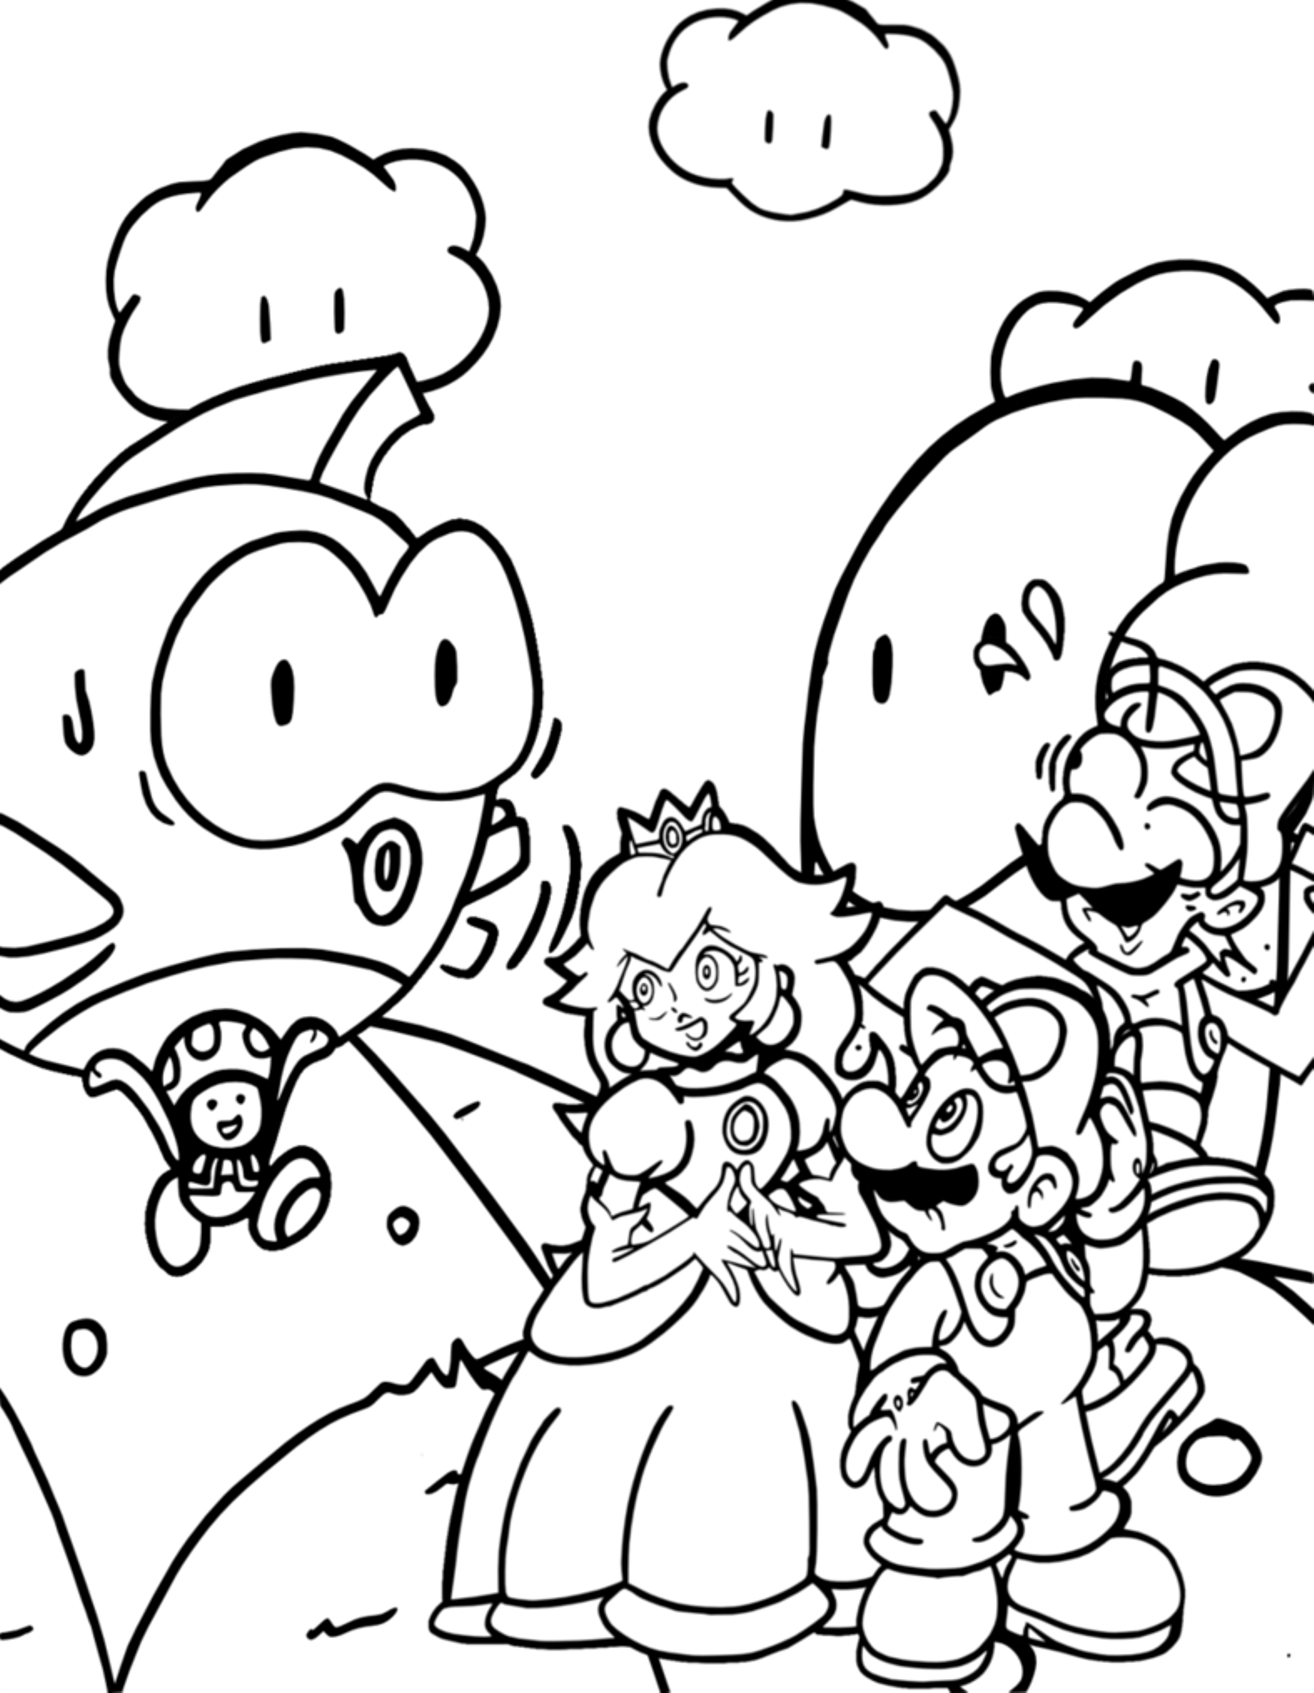 mario characters coloring pages super mario characters pages coloring pages pages mario characters coloring